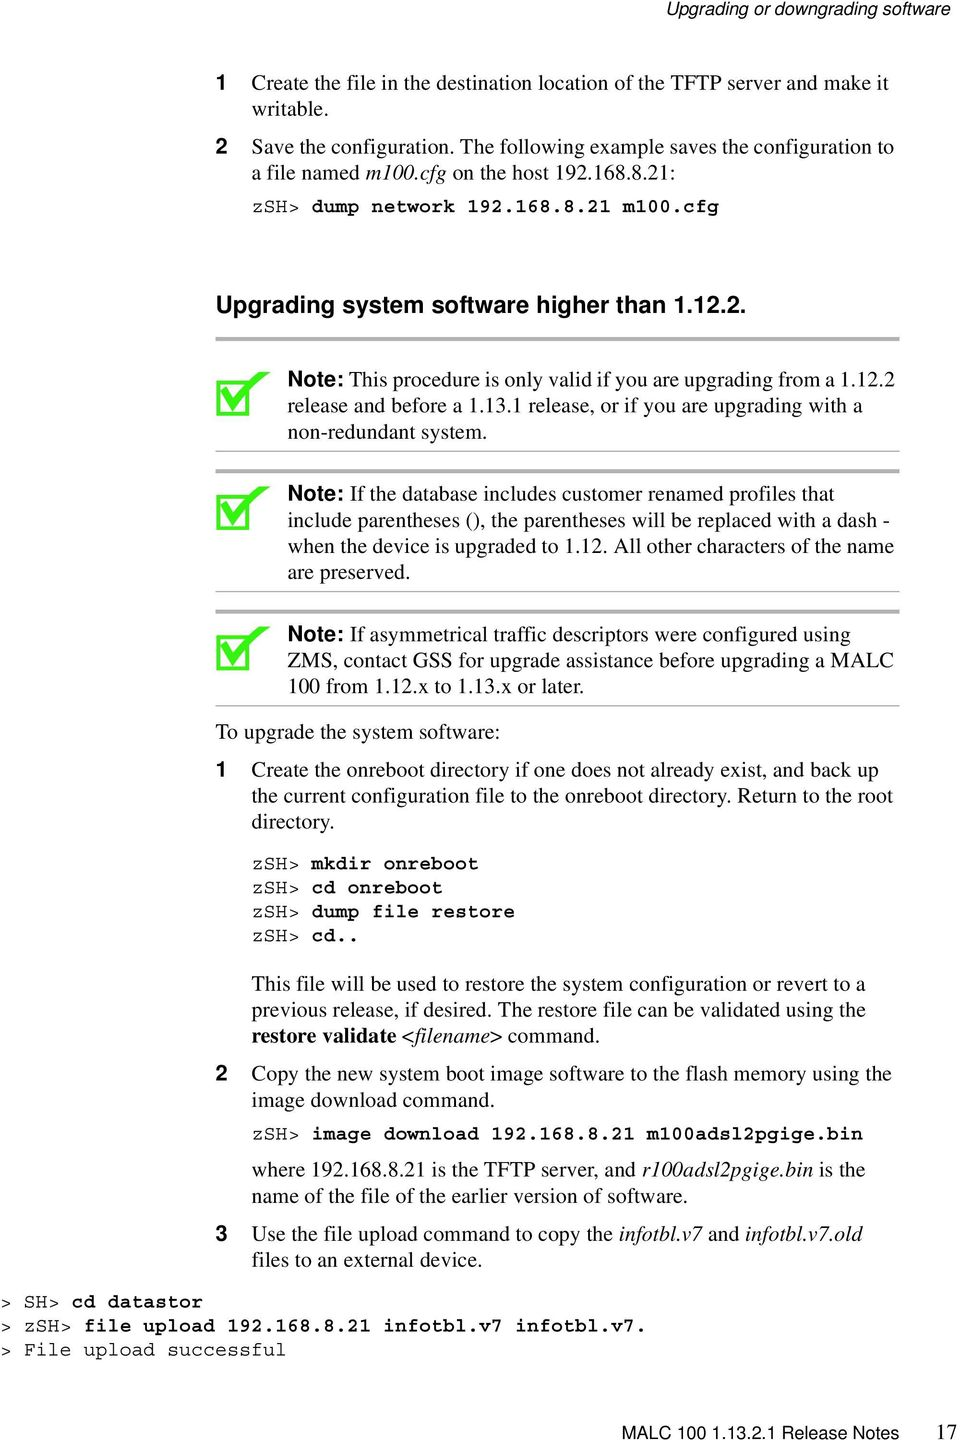 12.2 release and before a 1.13.1 release, or if you are upgrading with a non-redundant system.